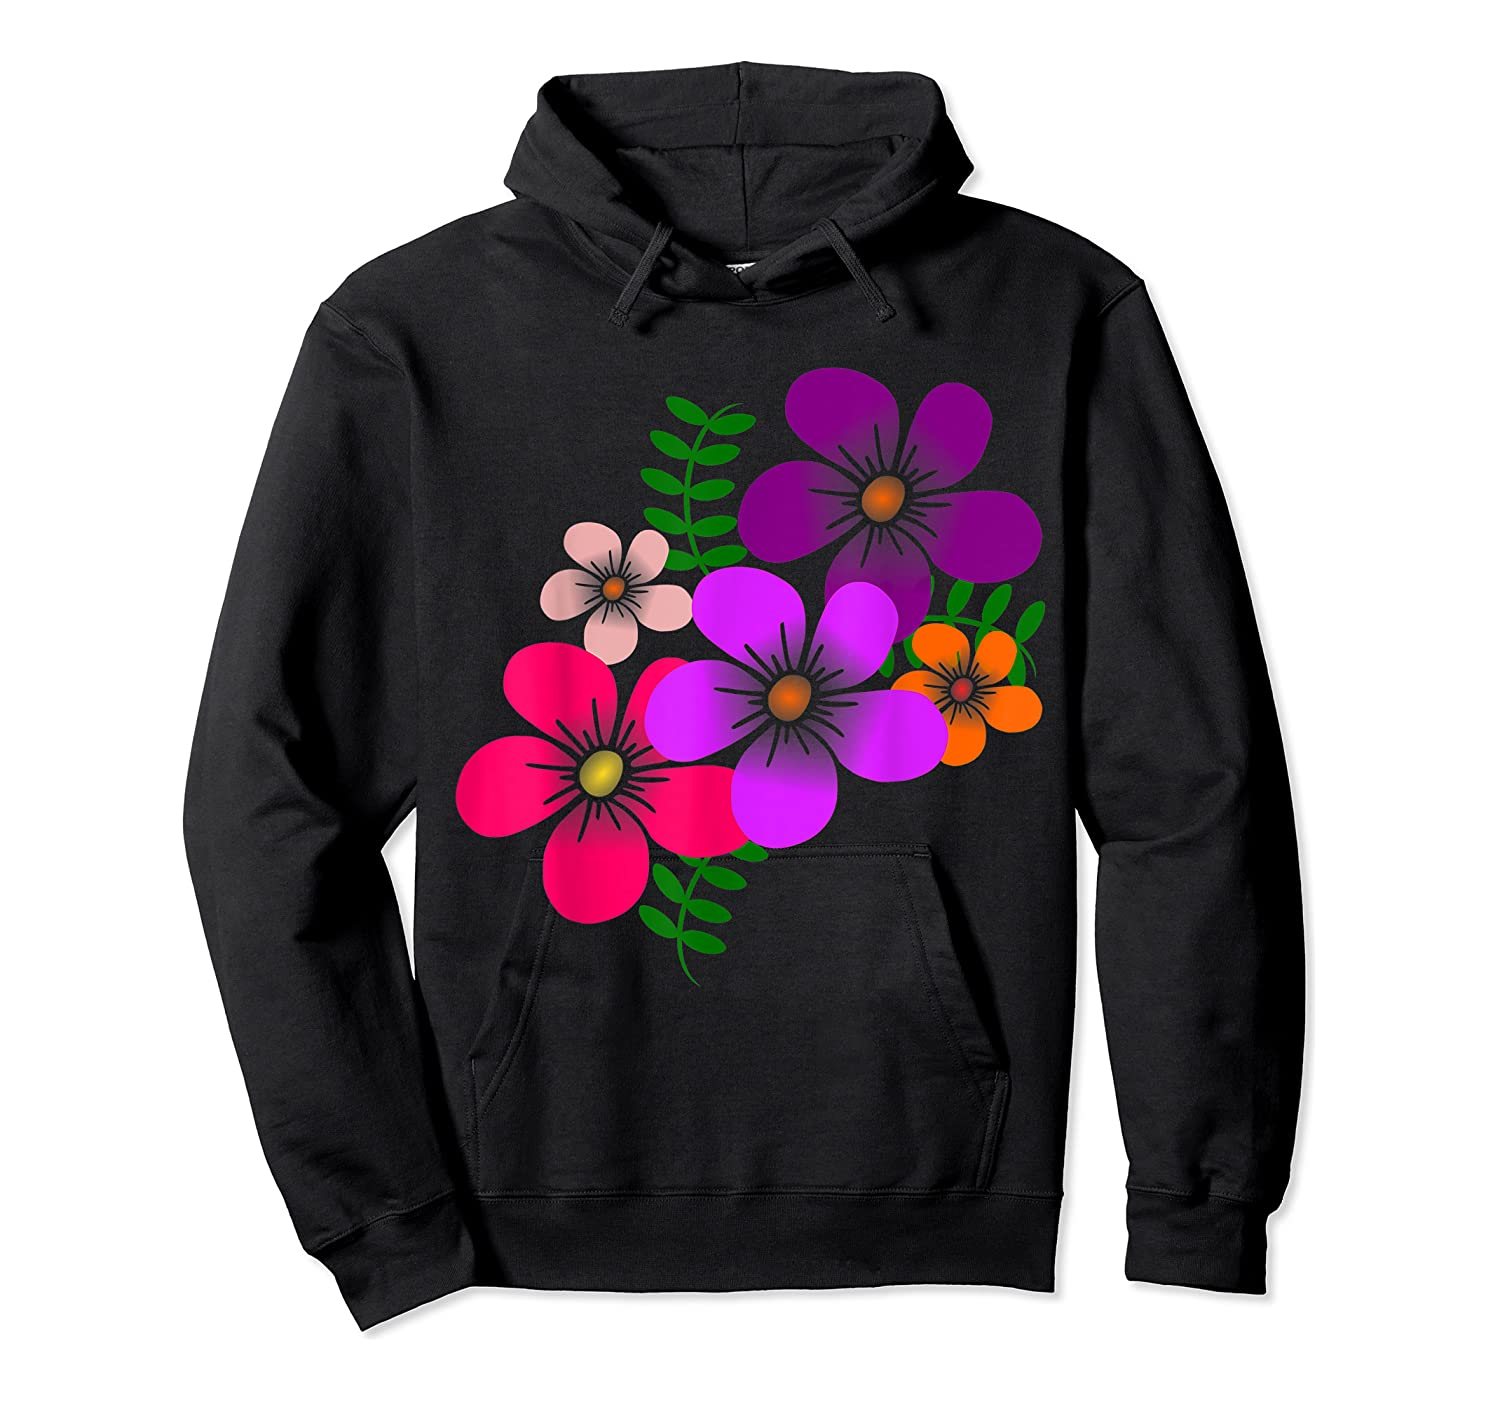 Blooming Flower, Blooms, Blossoms, Garden, Bunch Of Flowers T-shirt Unisex Pullover Hoodie